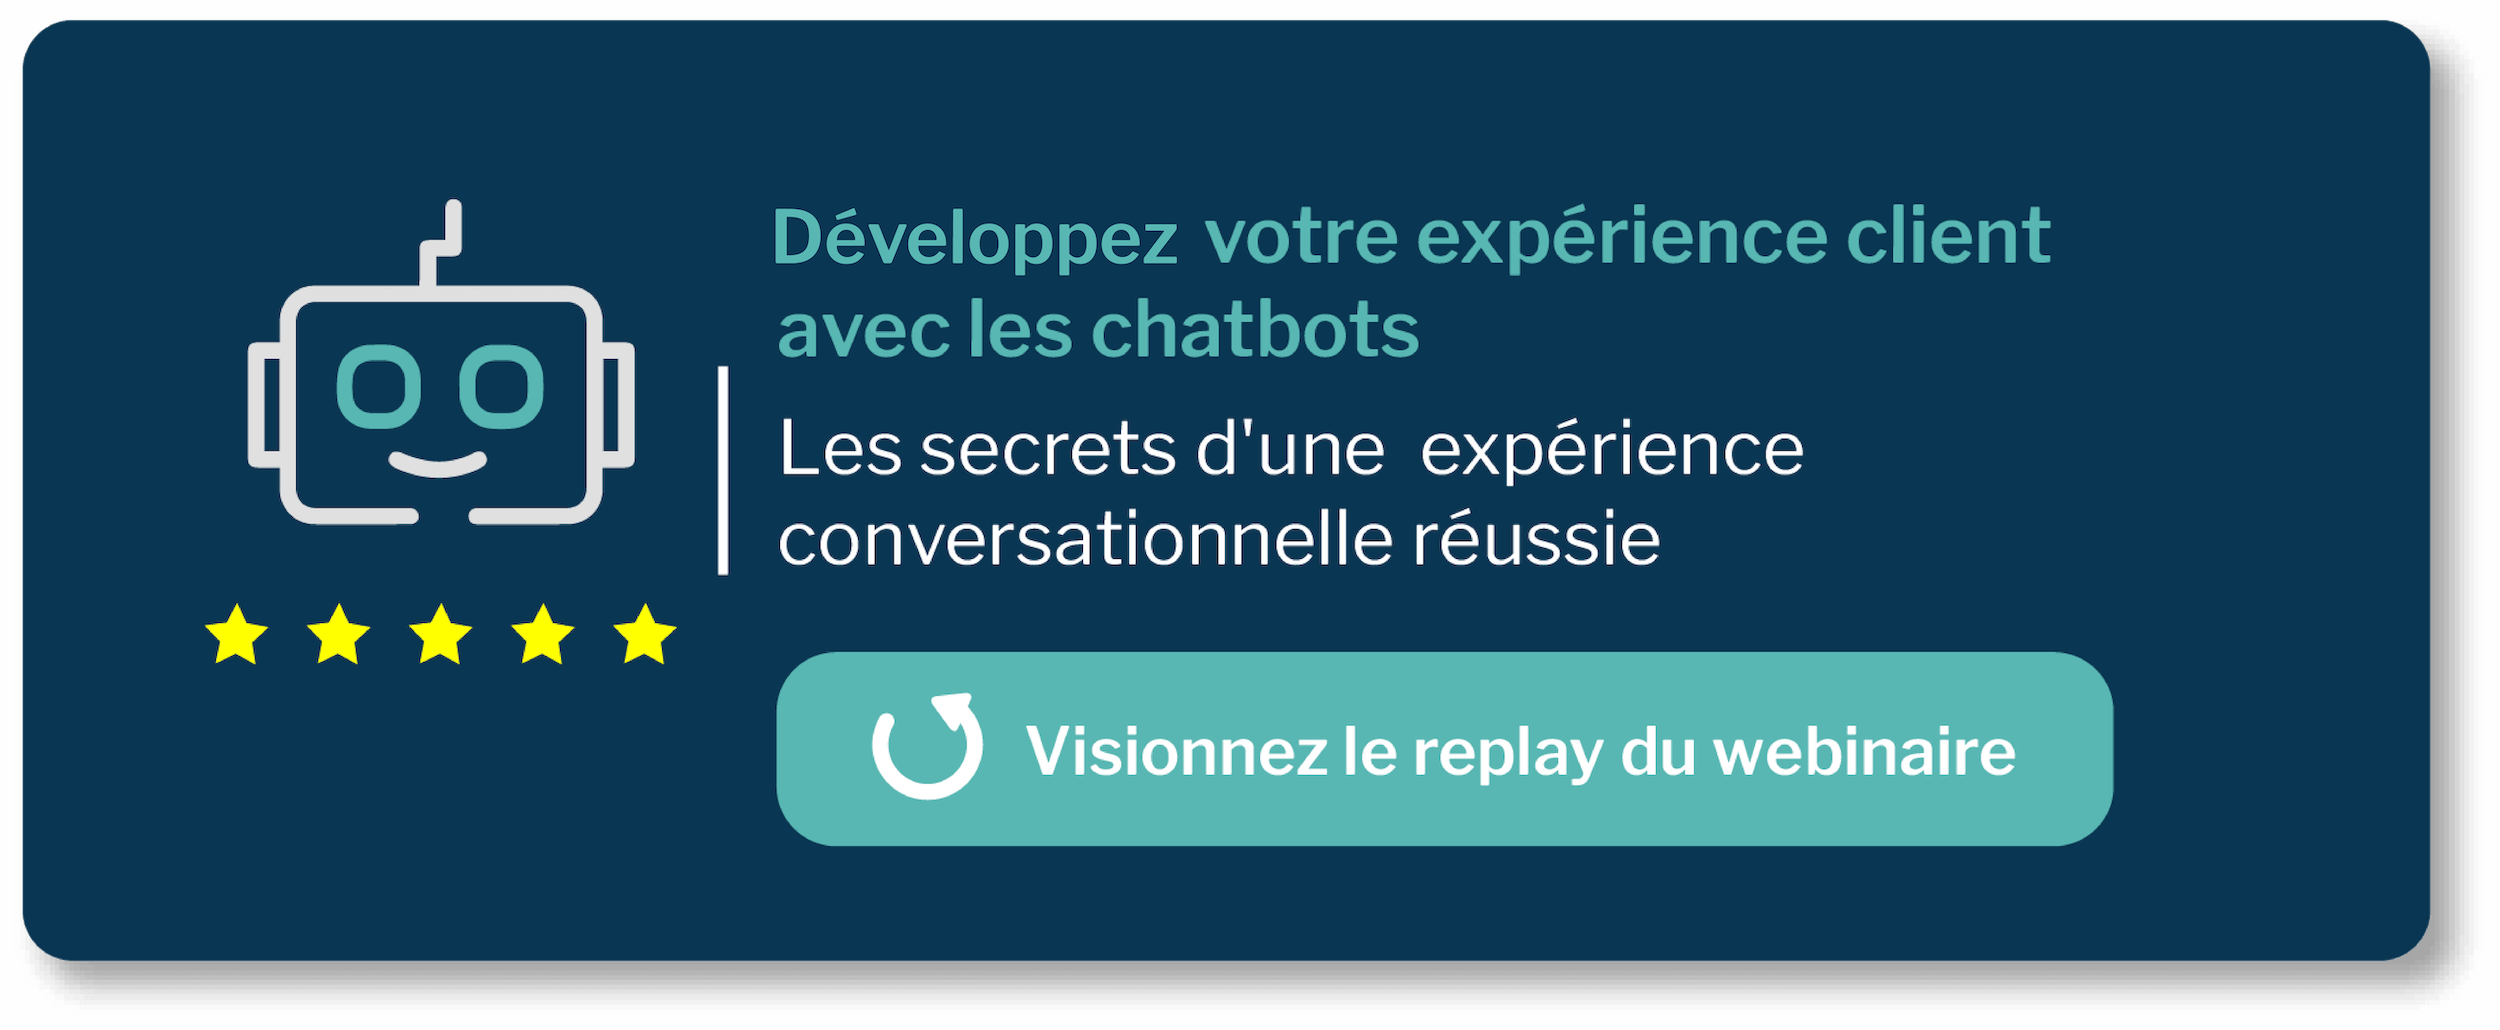 webinaire_secret_experience_chatbot